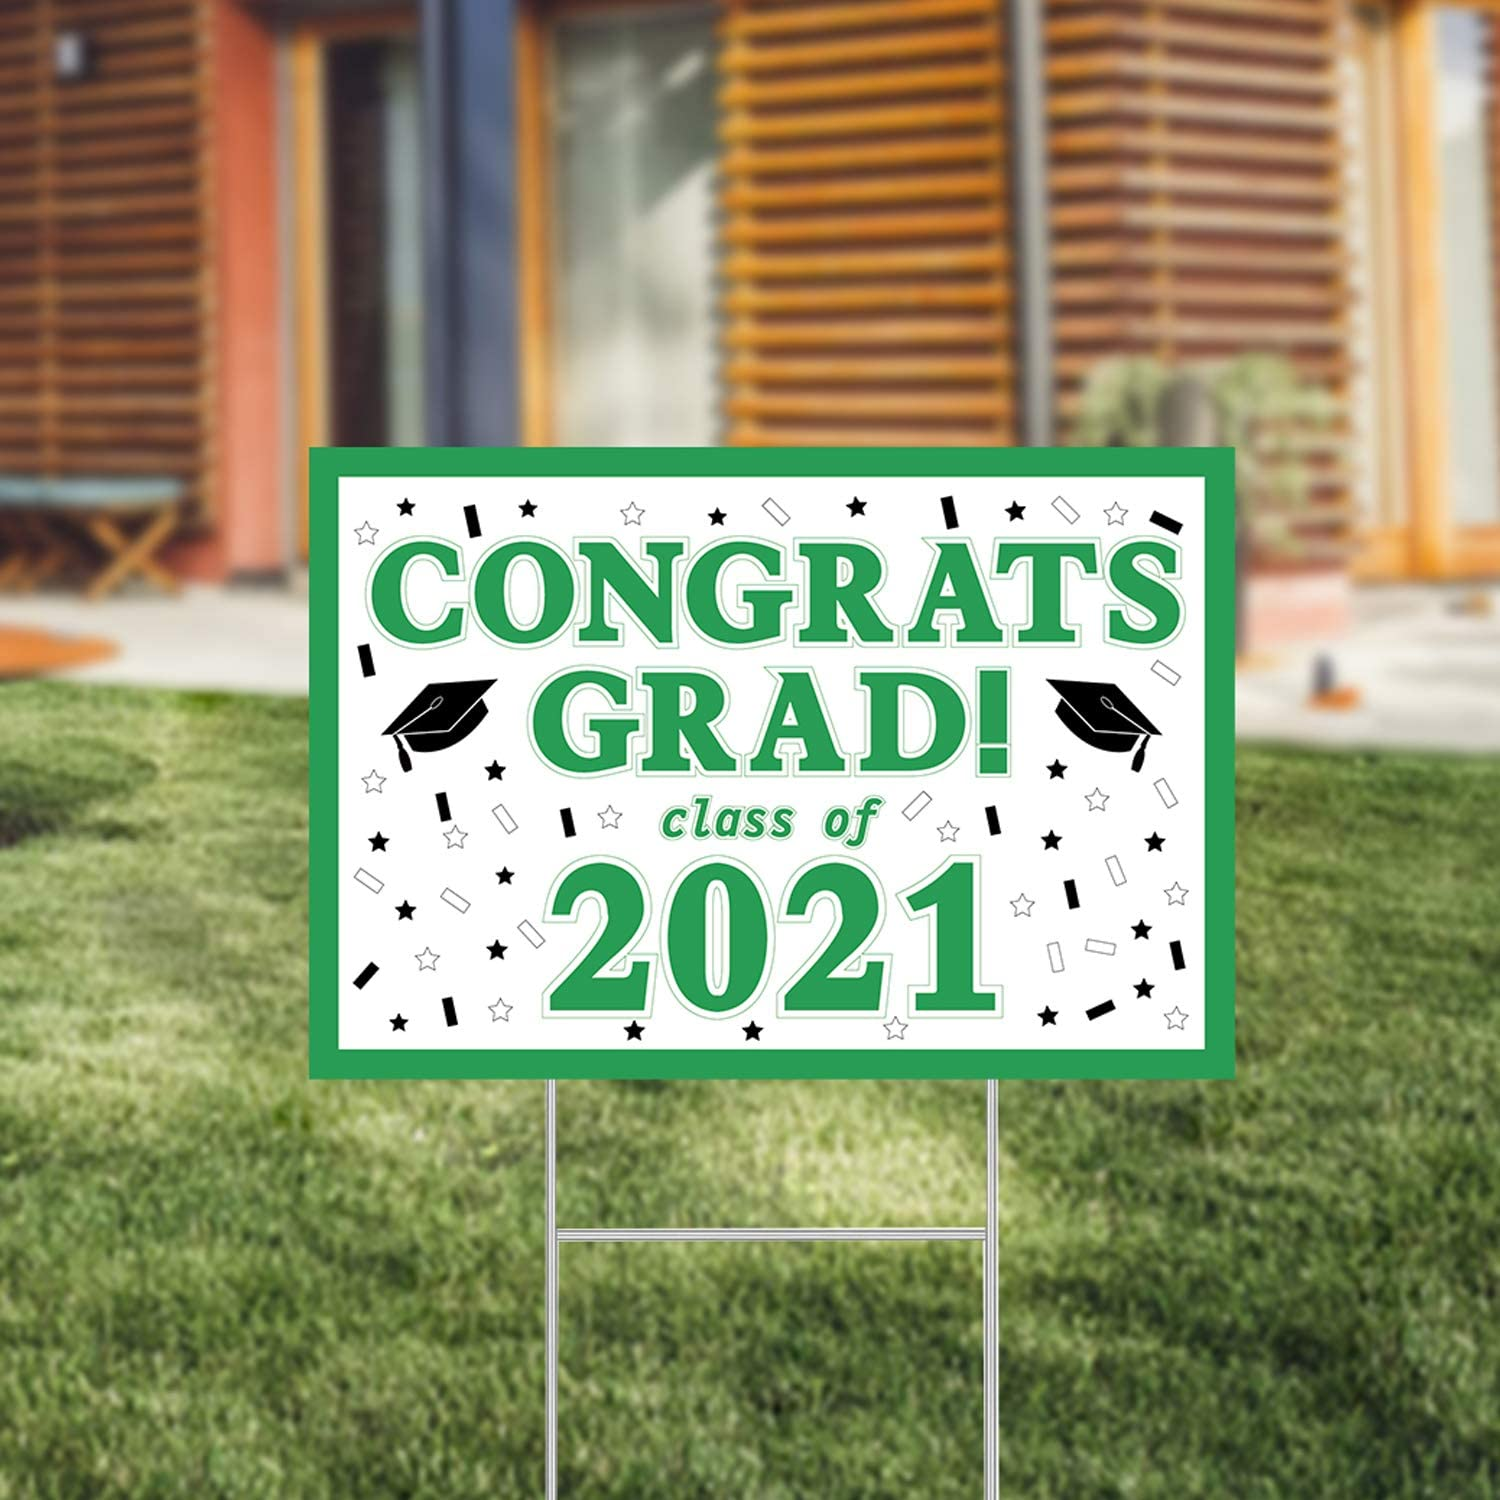 CHOiES record your inspired fashion 2021 Graduation Yard Signs with Stakes Green Big 2020 Graduation Decorations Weatherproof Corrugated Plastic Signs